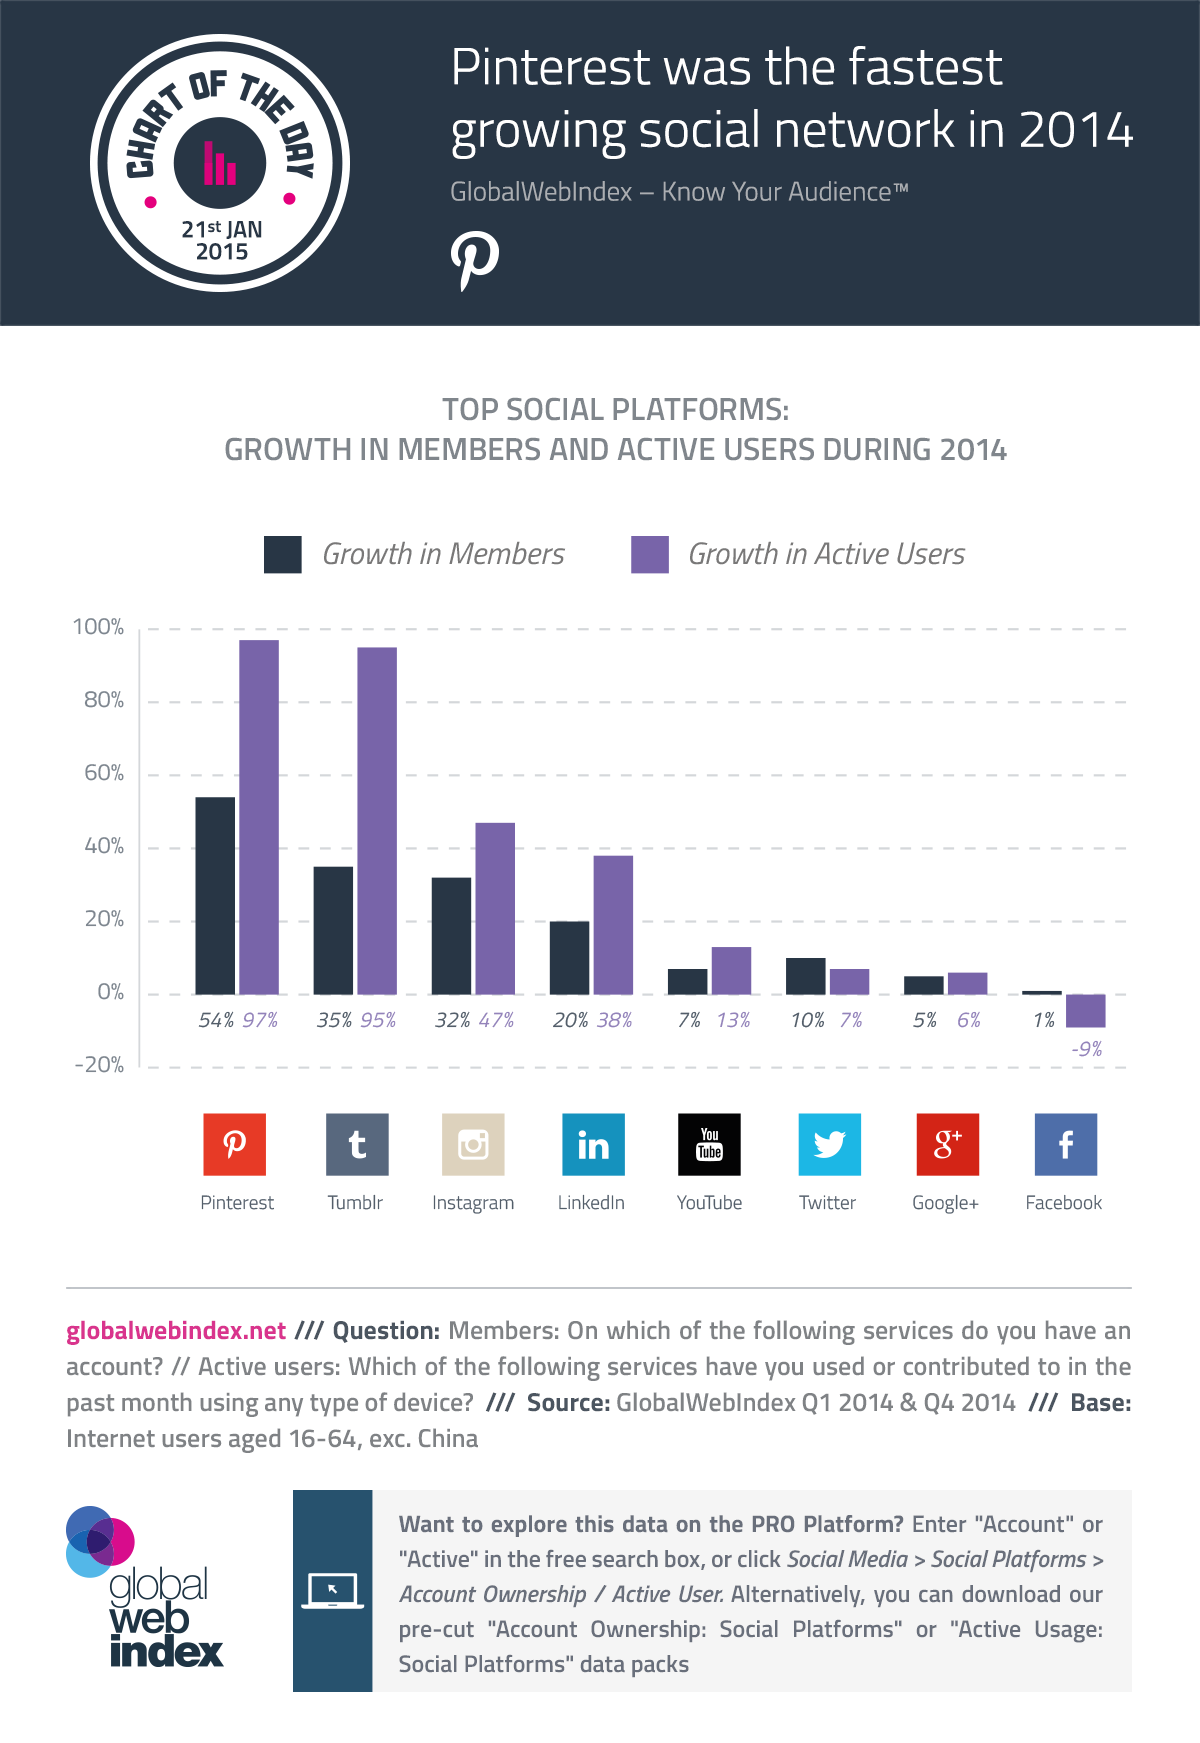 21st-Jan-2015-Pinterest-was-the-fastest-growing-social-network-in-2014